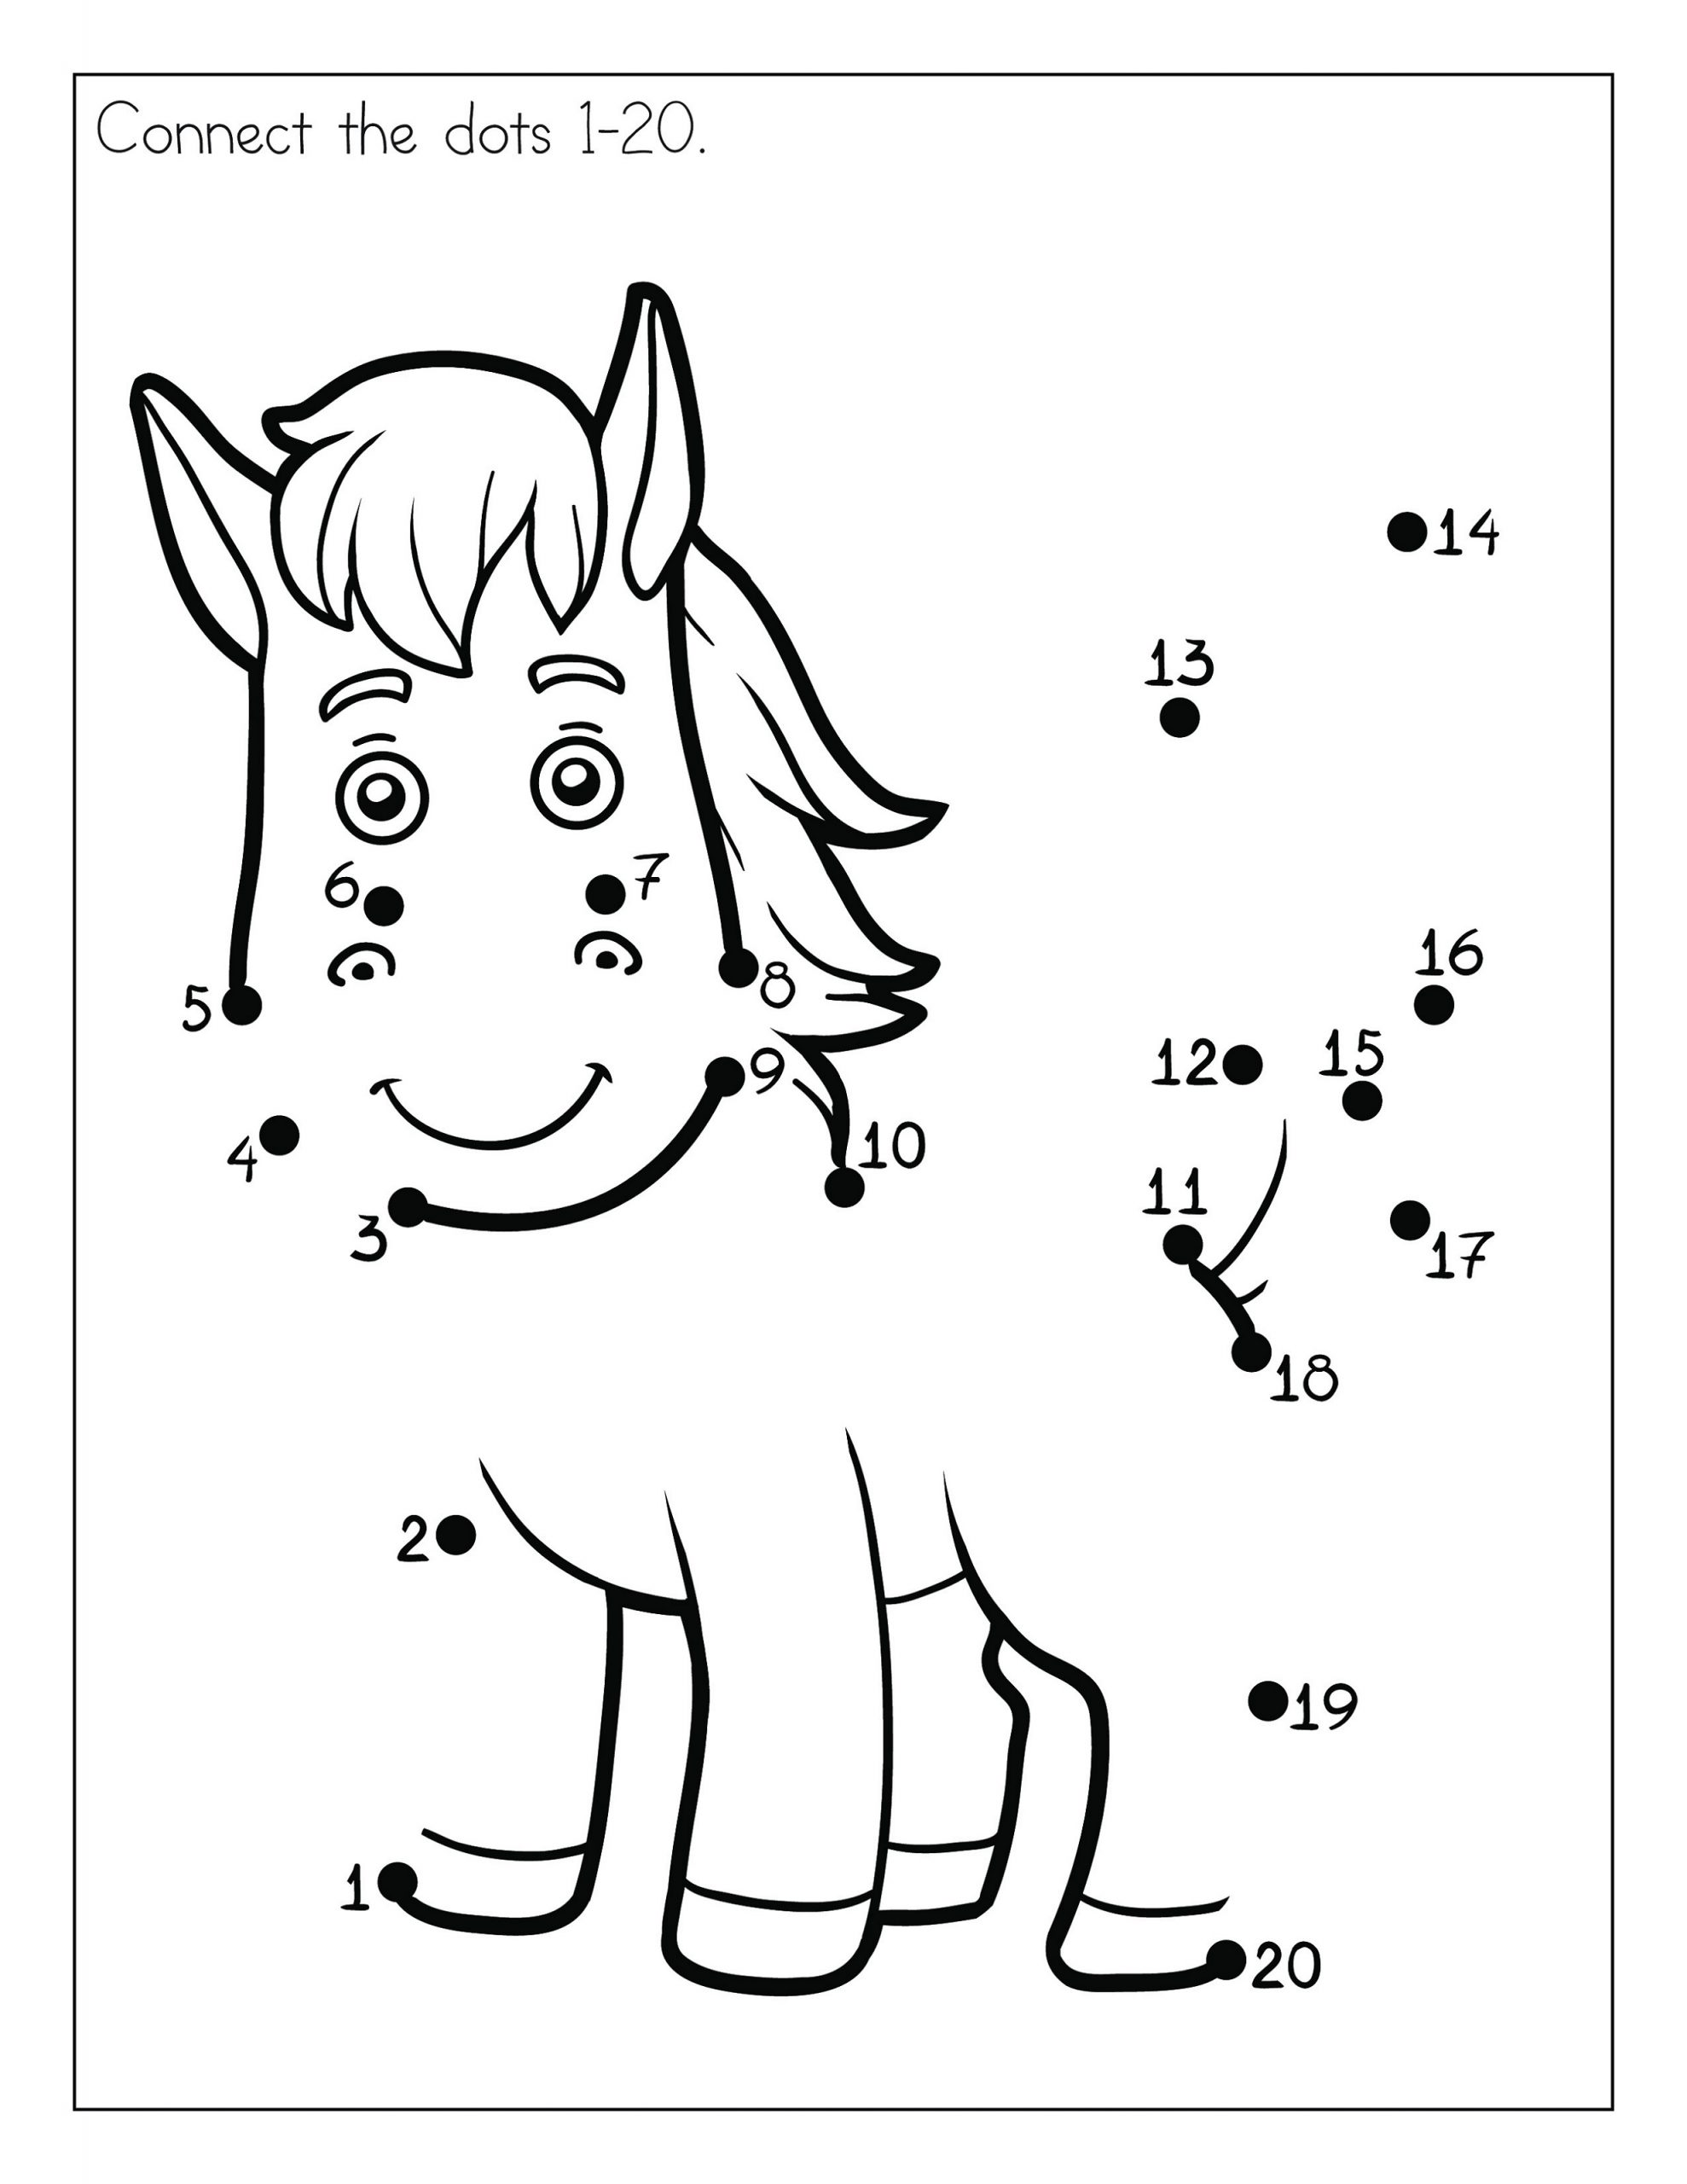 Horse Connect The Dots For Kids